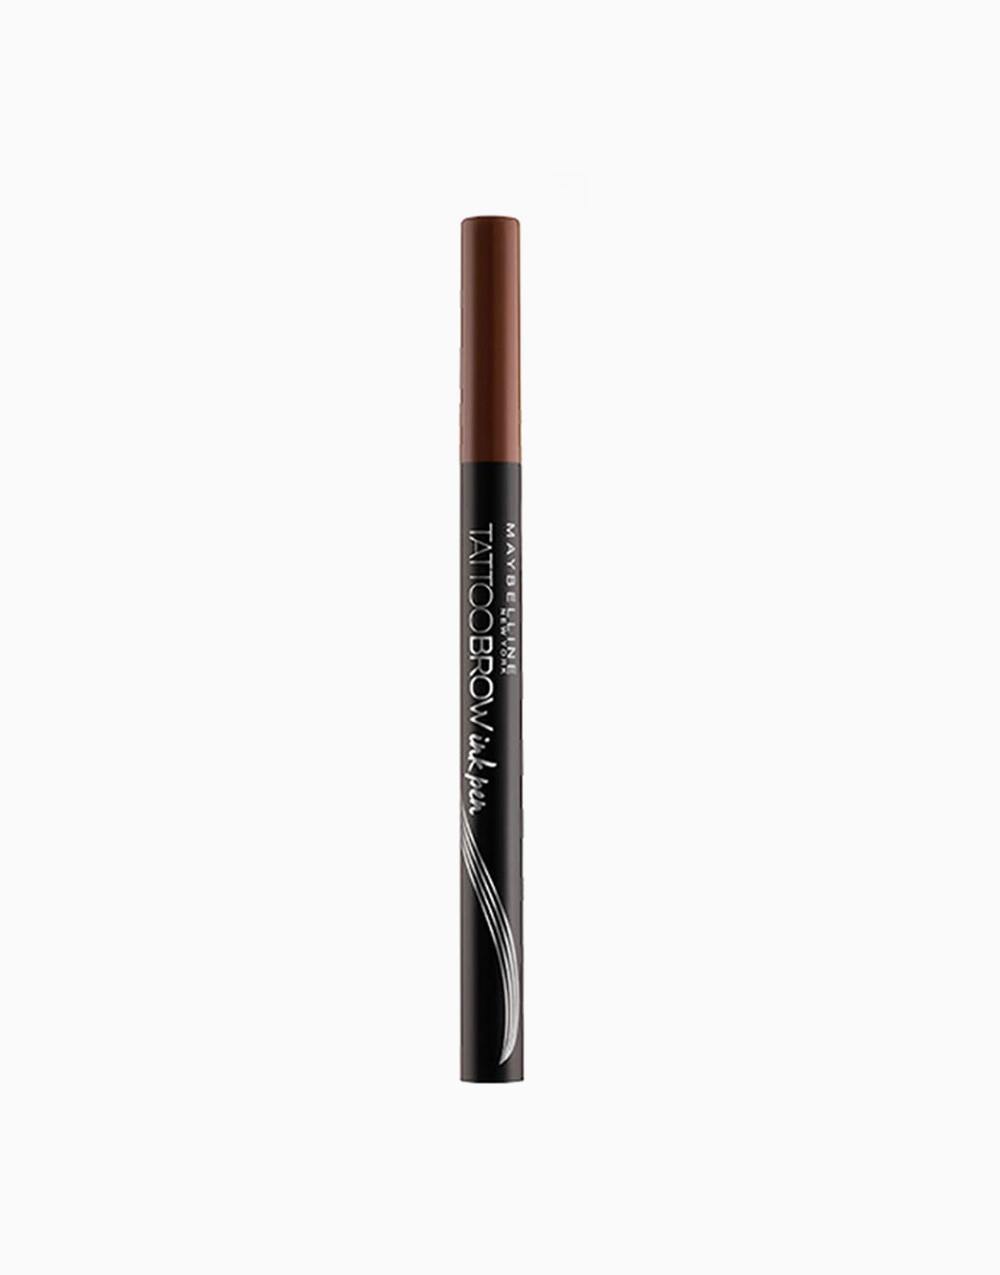 Tattoo Brow Ink Pen by Maybelline | Red Brown